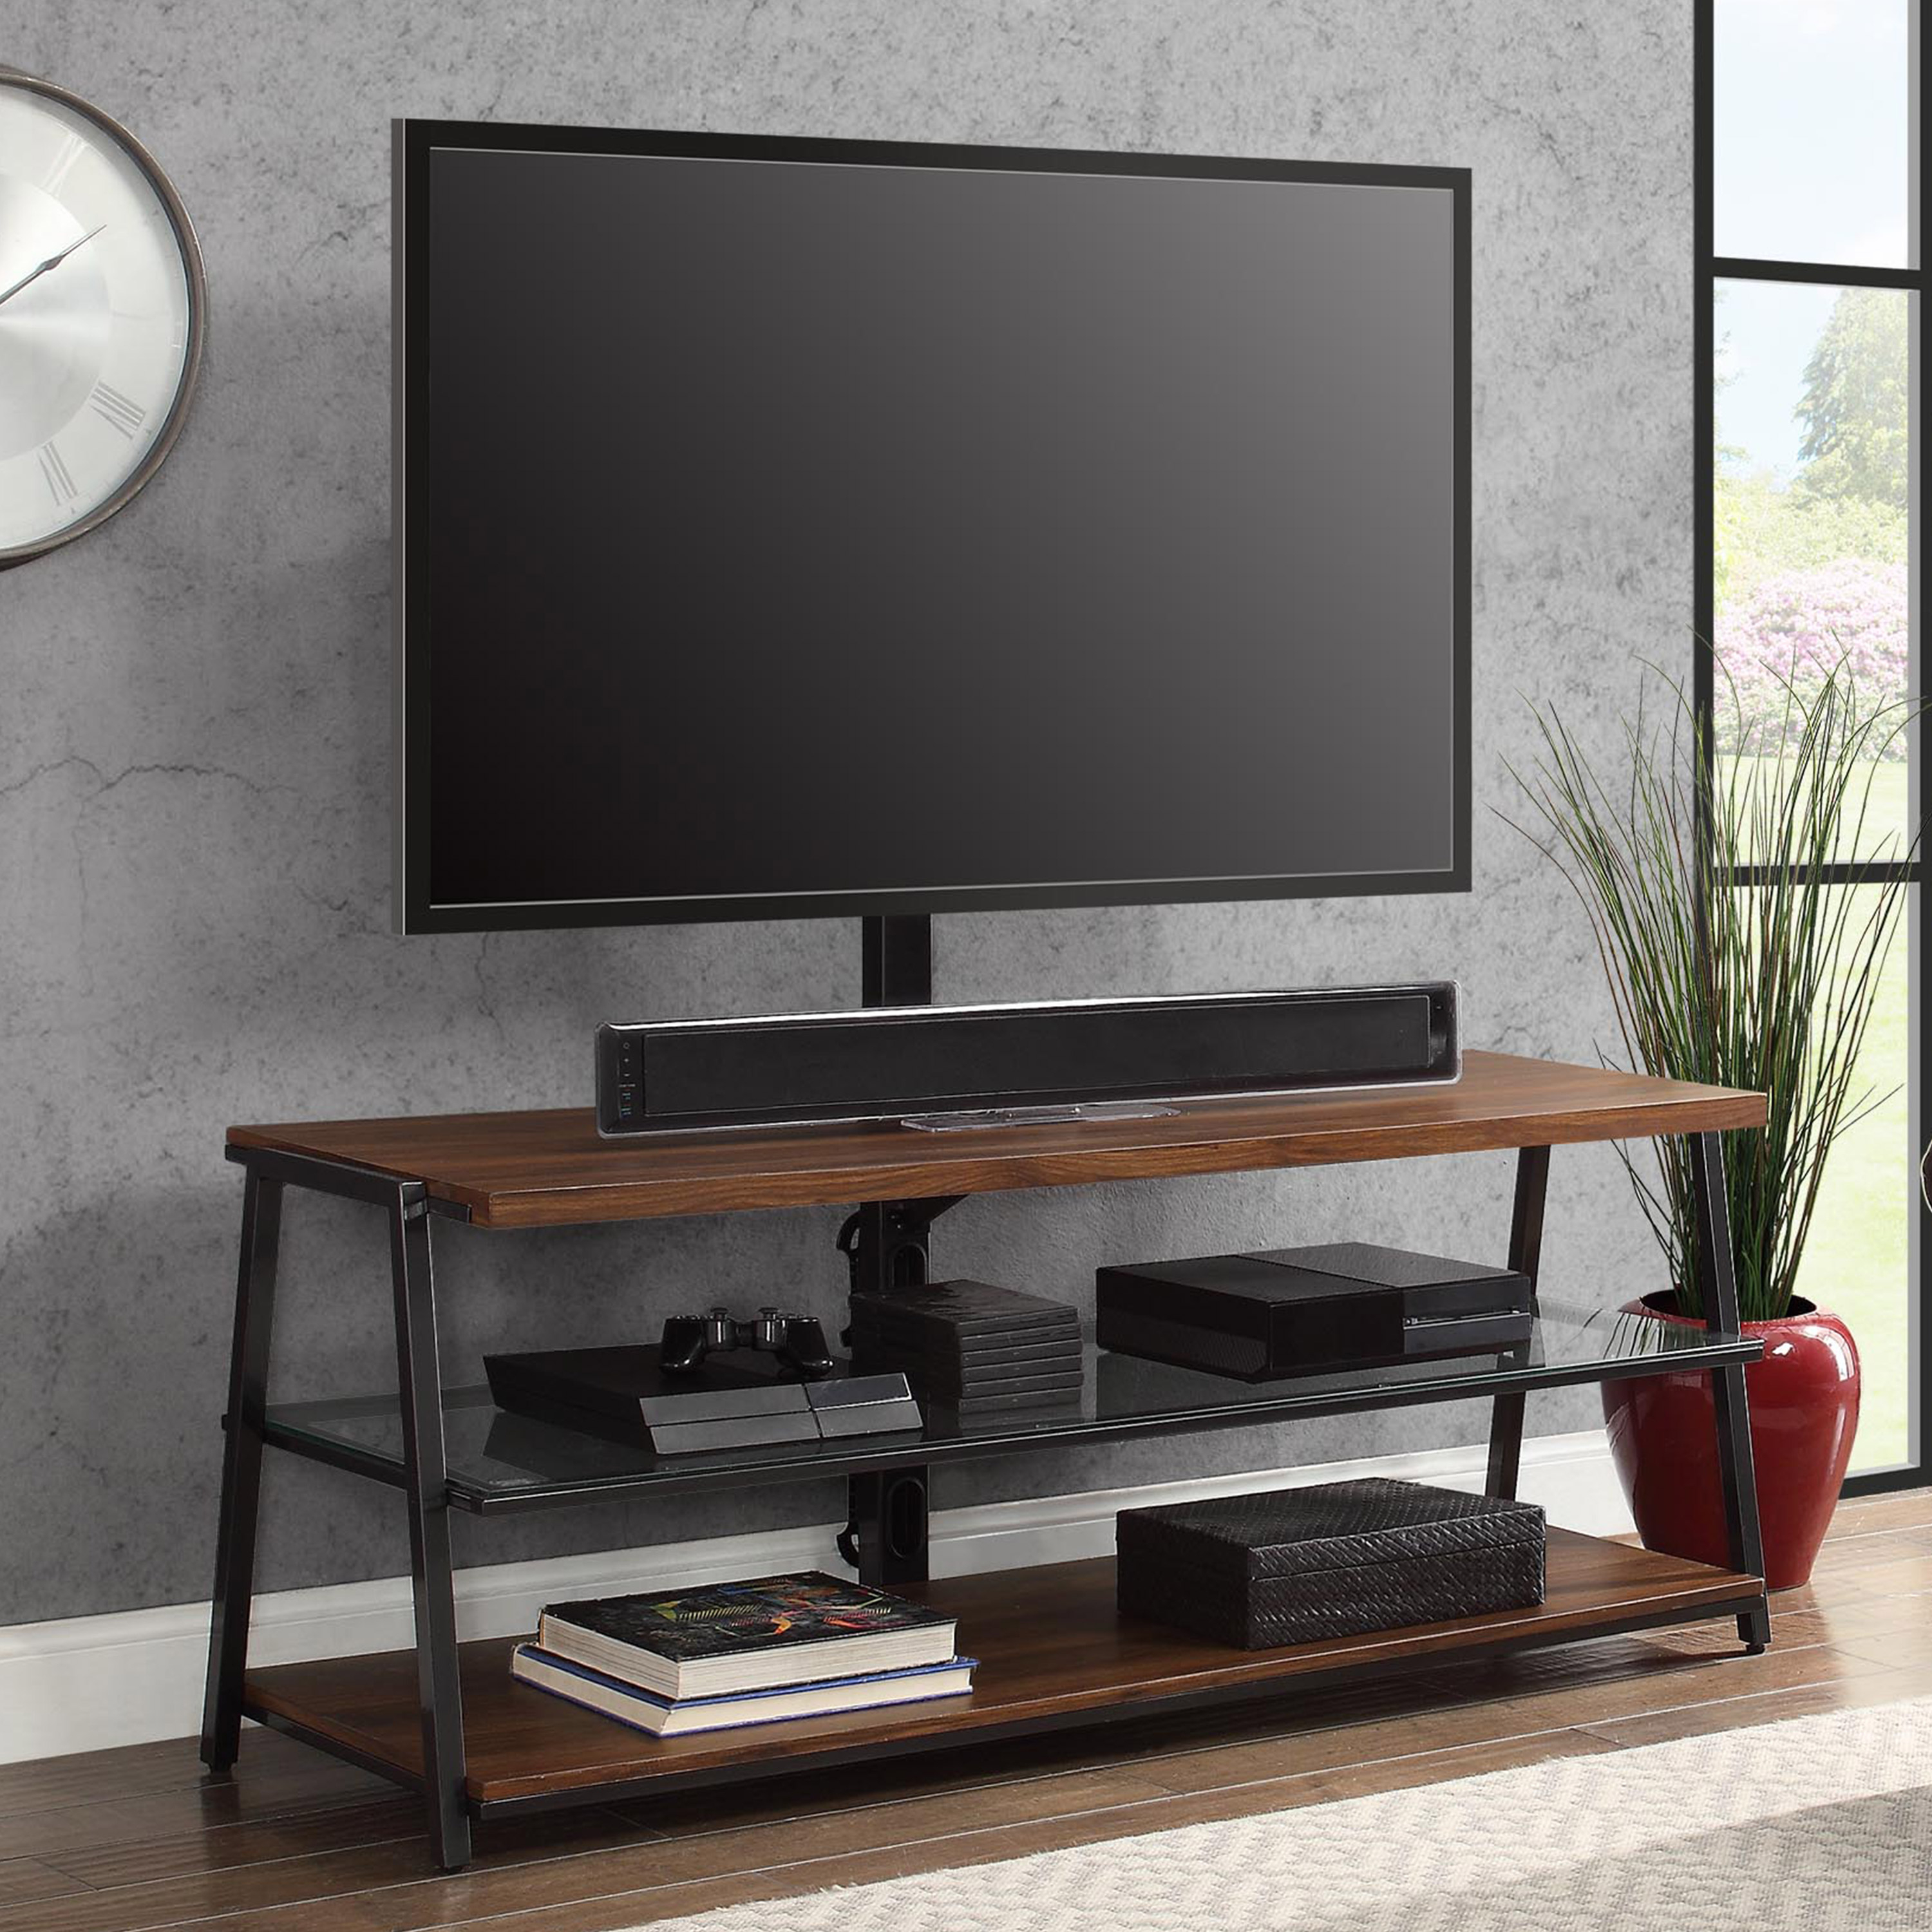 """Mainstays Arris 3 In 1 Tv Stand For Televisions Up To 70"""", Perfect Regarding Canyon 64 Inch Tv Stands (View 15 of 20)"""